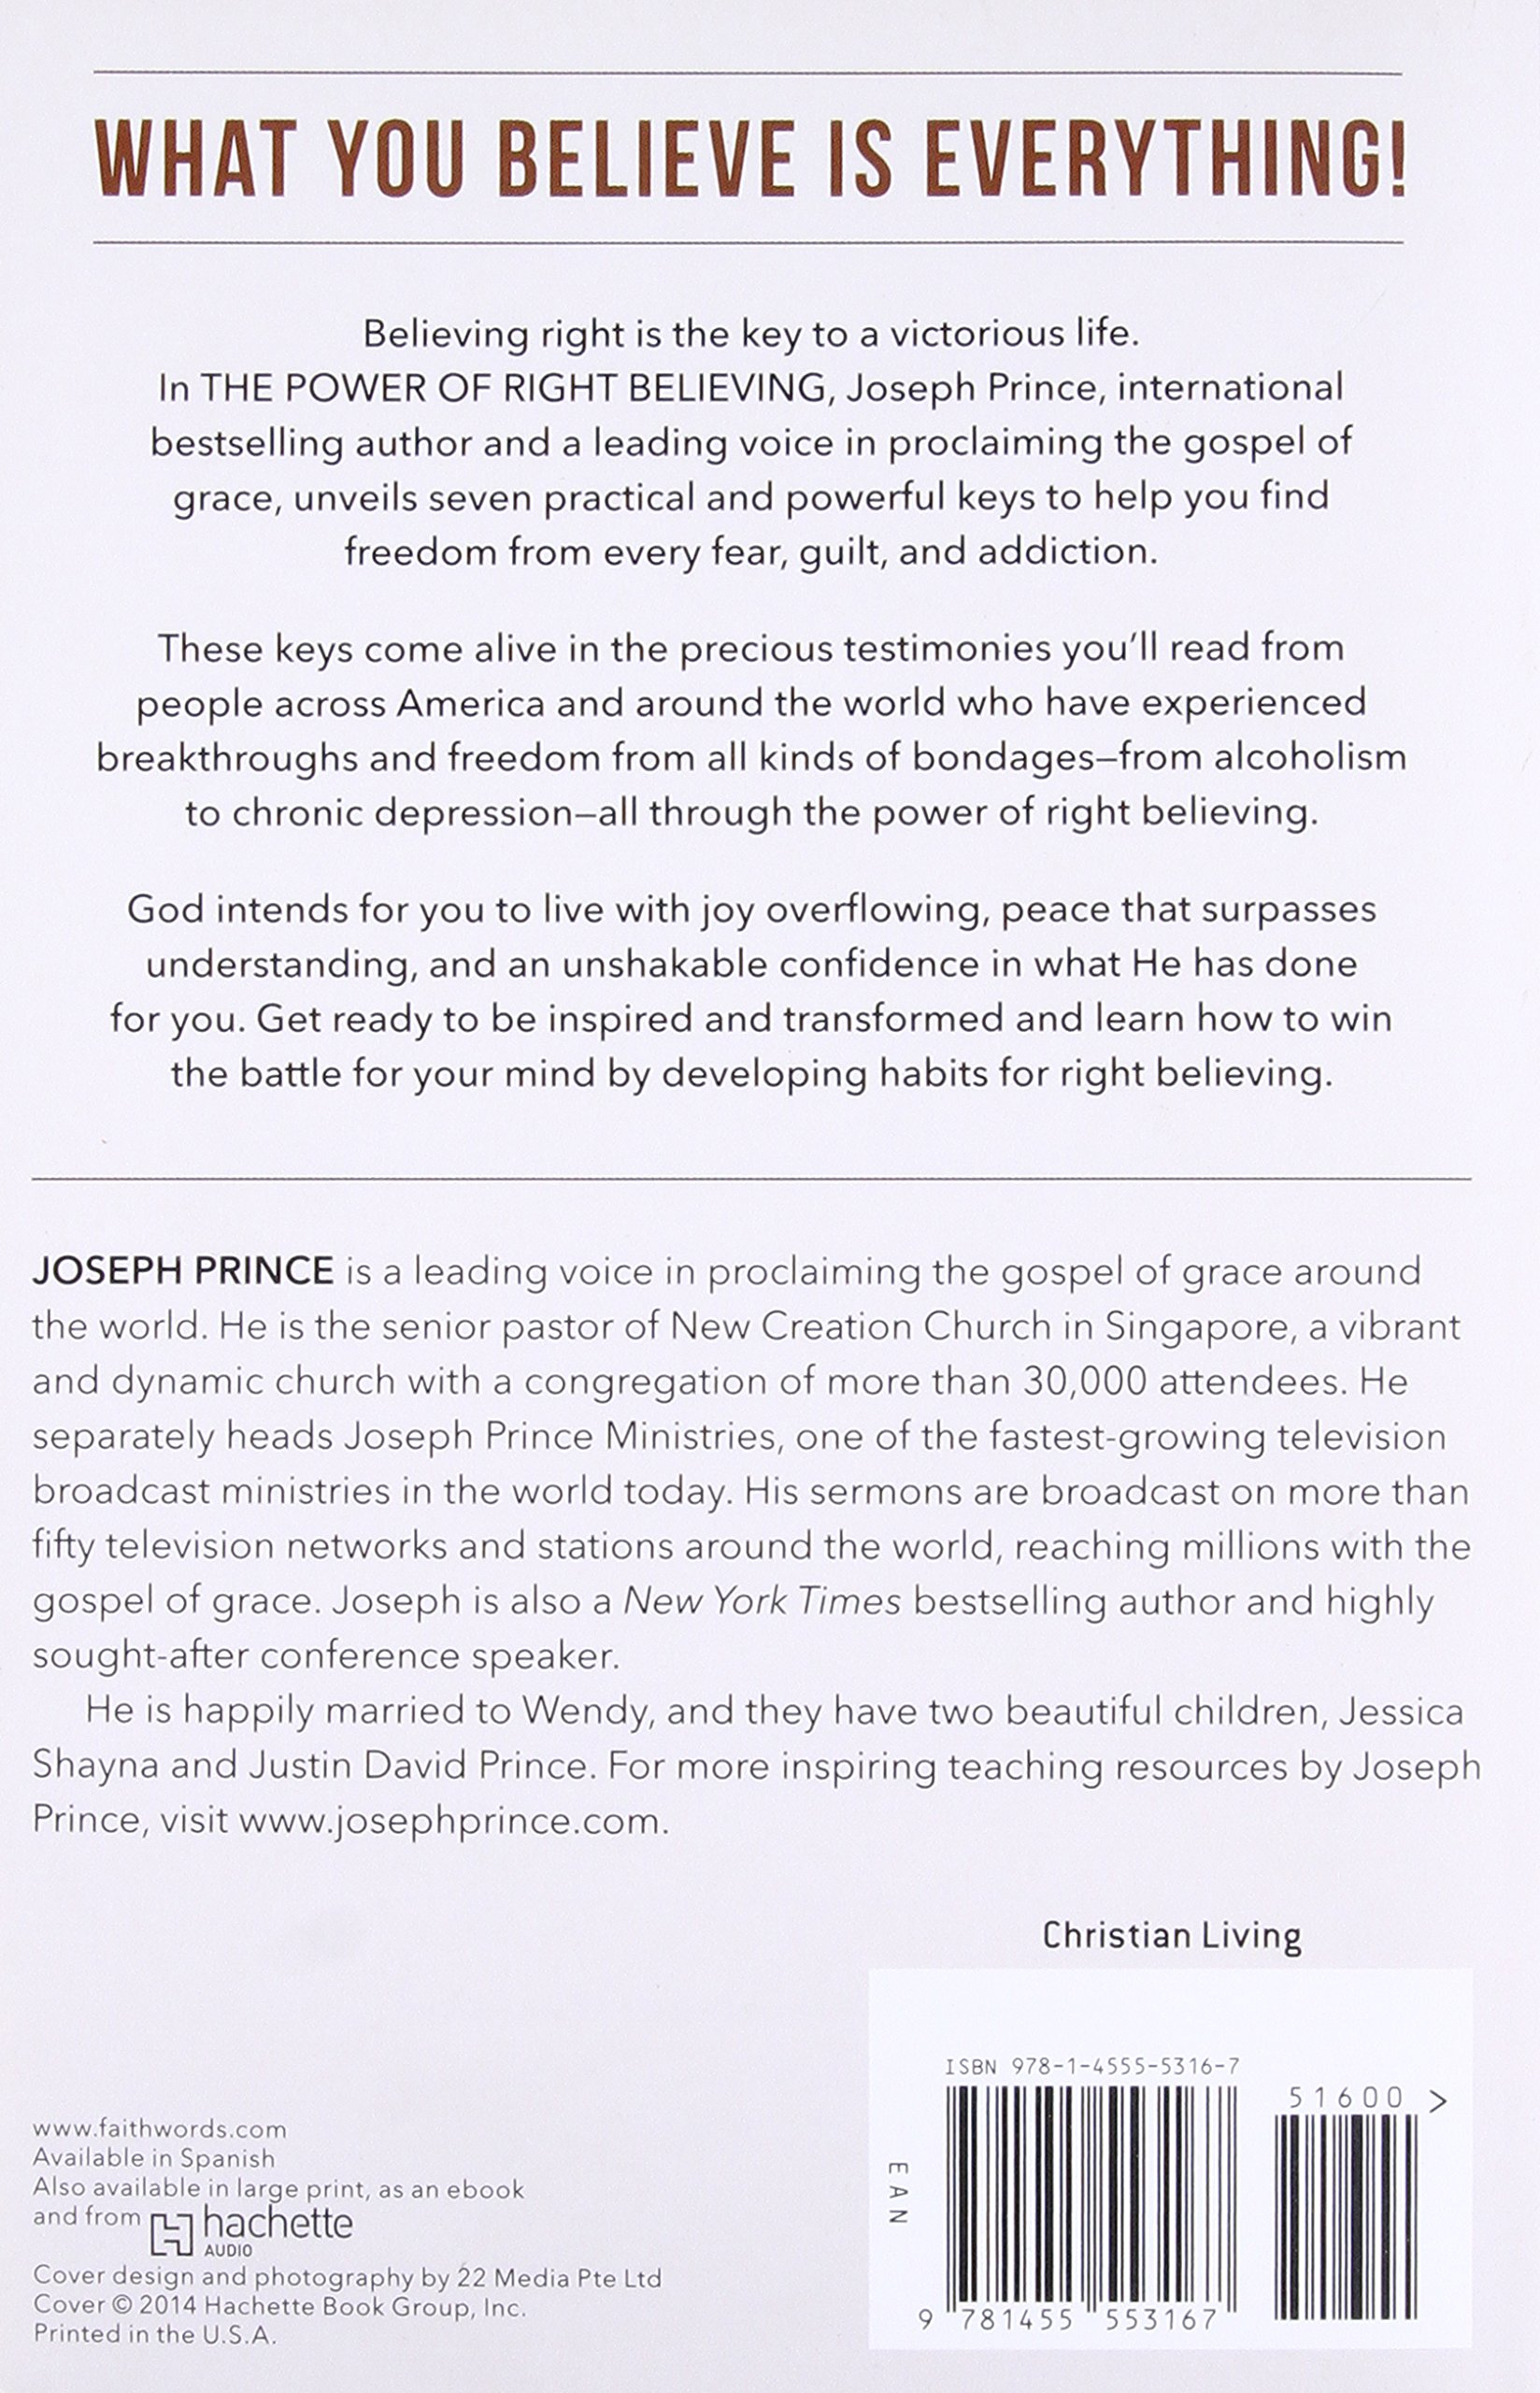 The power of right believing 7 keys to freedom from fear guilt the power of right believing 7 keys to freedom from fear guilt and addiction joseph prince 9781455553167 amazon books fandeluxe Choice Image